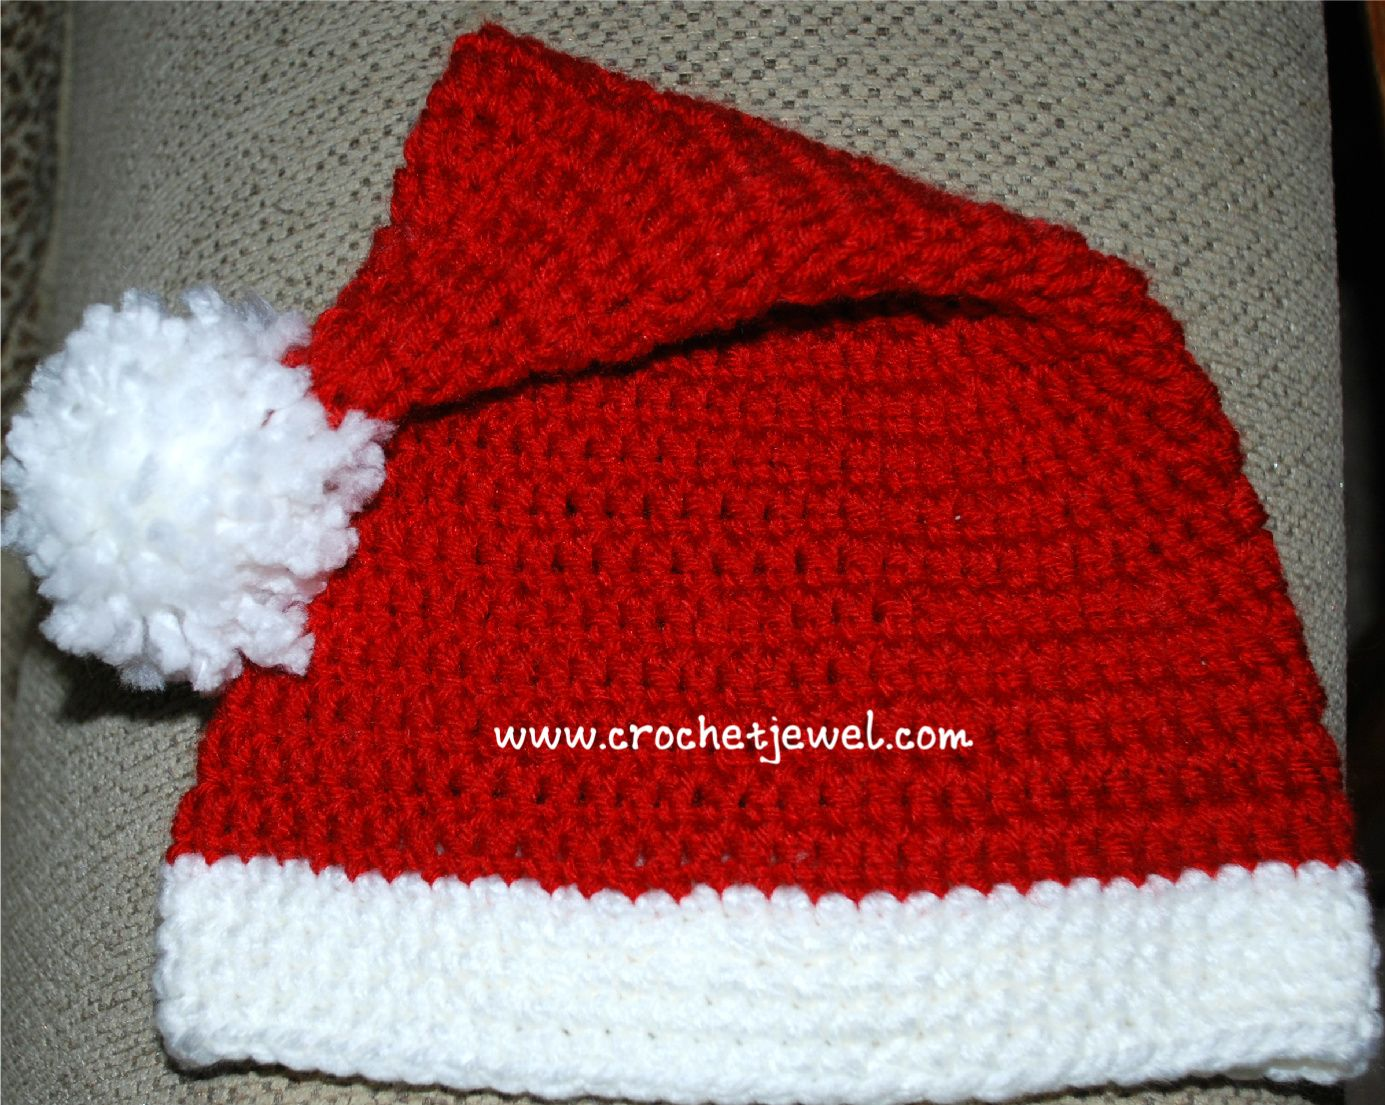 Crochet toddler santa hat if you tell others about my work please crochet toddler santa hat if you tell others about my work please only link back bankloansurffo Choice Image